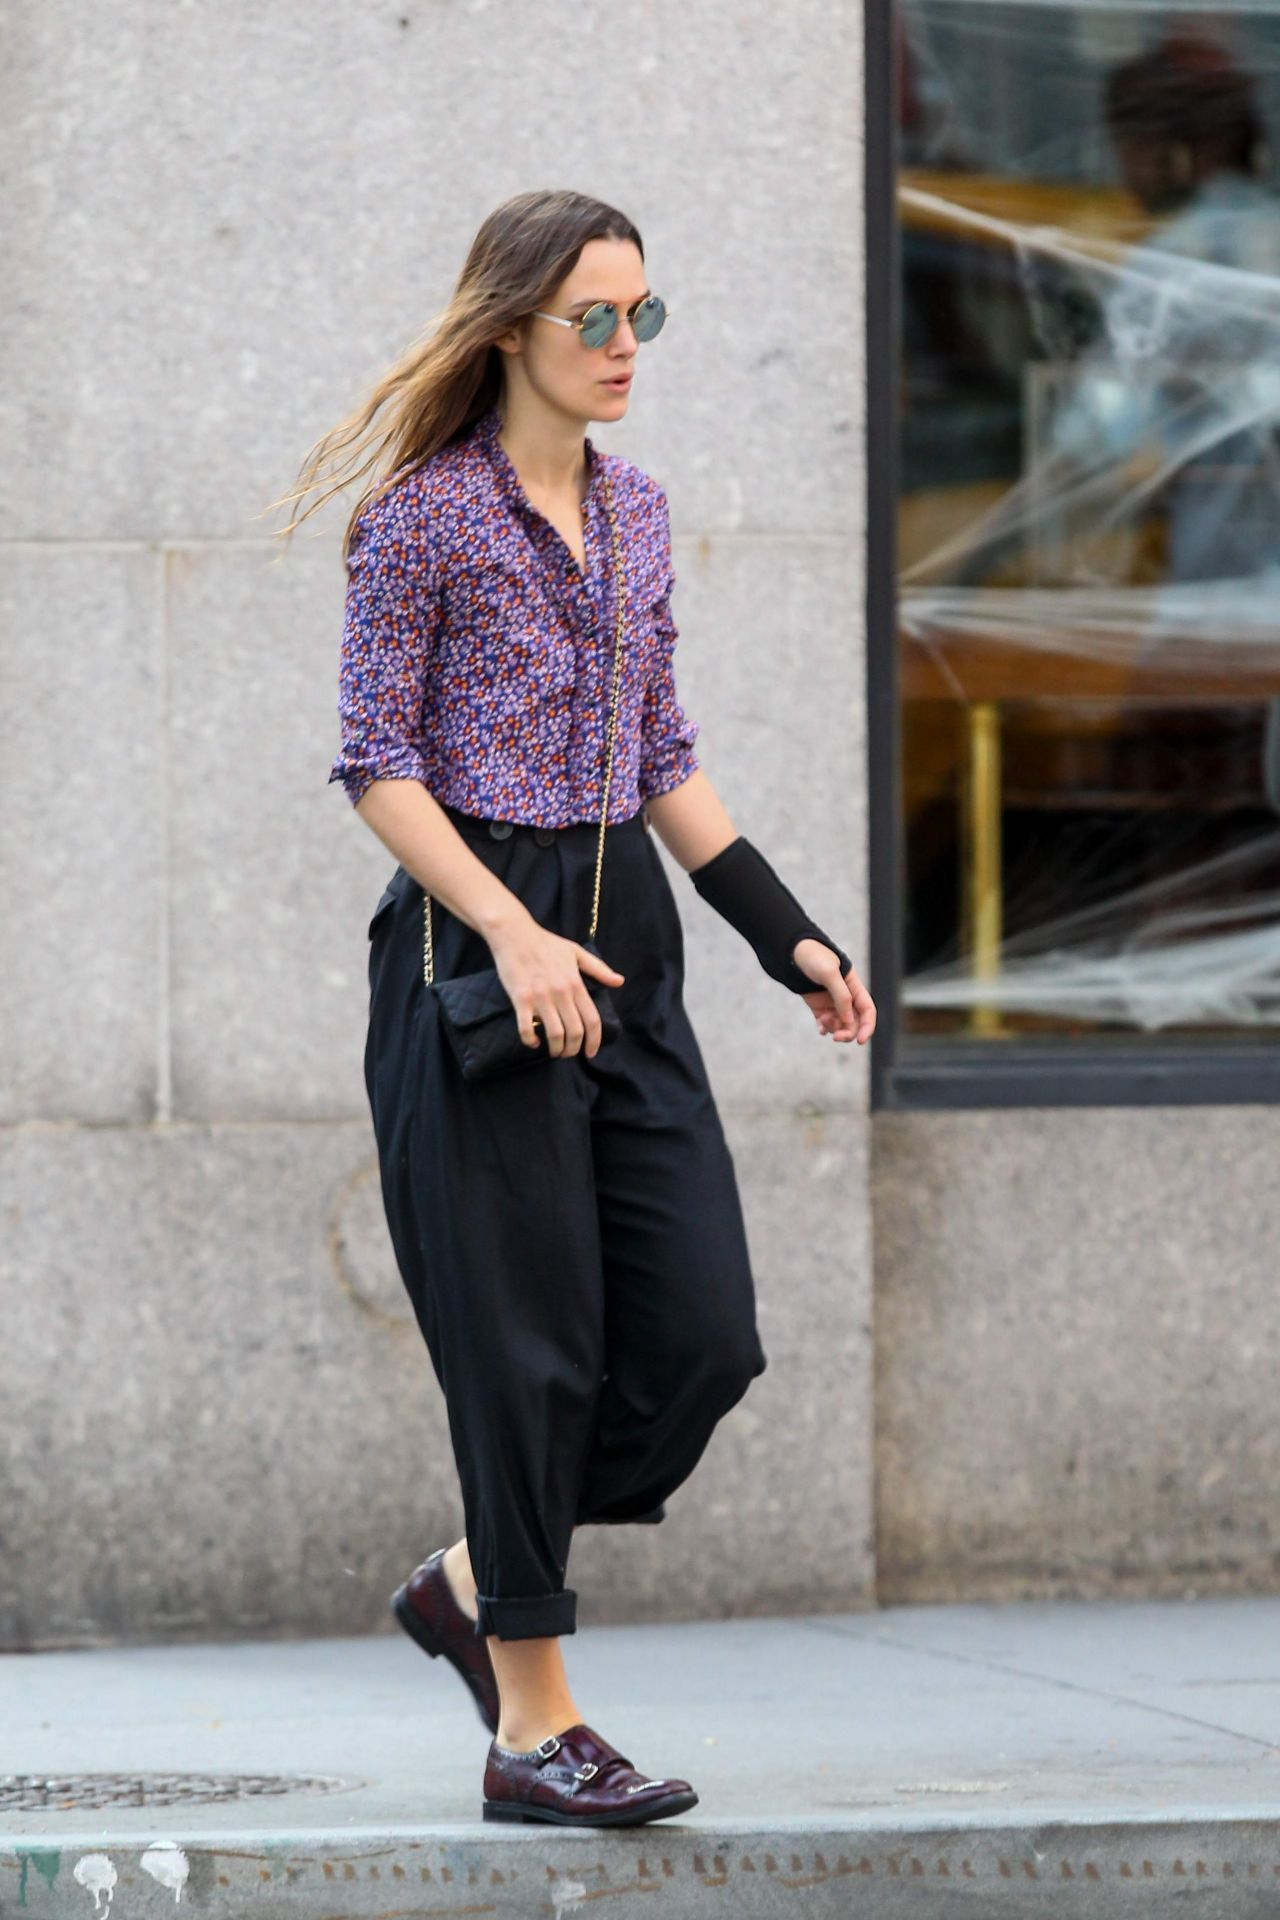 Keira knightley street style out in new york city october Fashion style october 2015